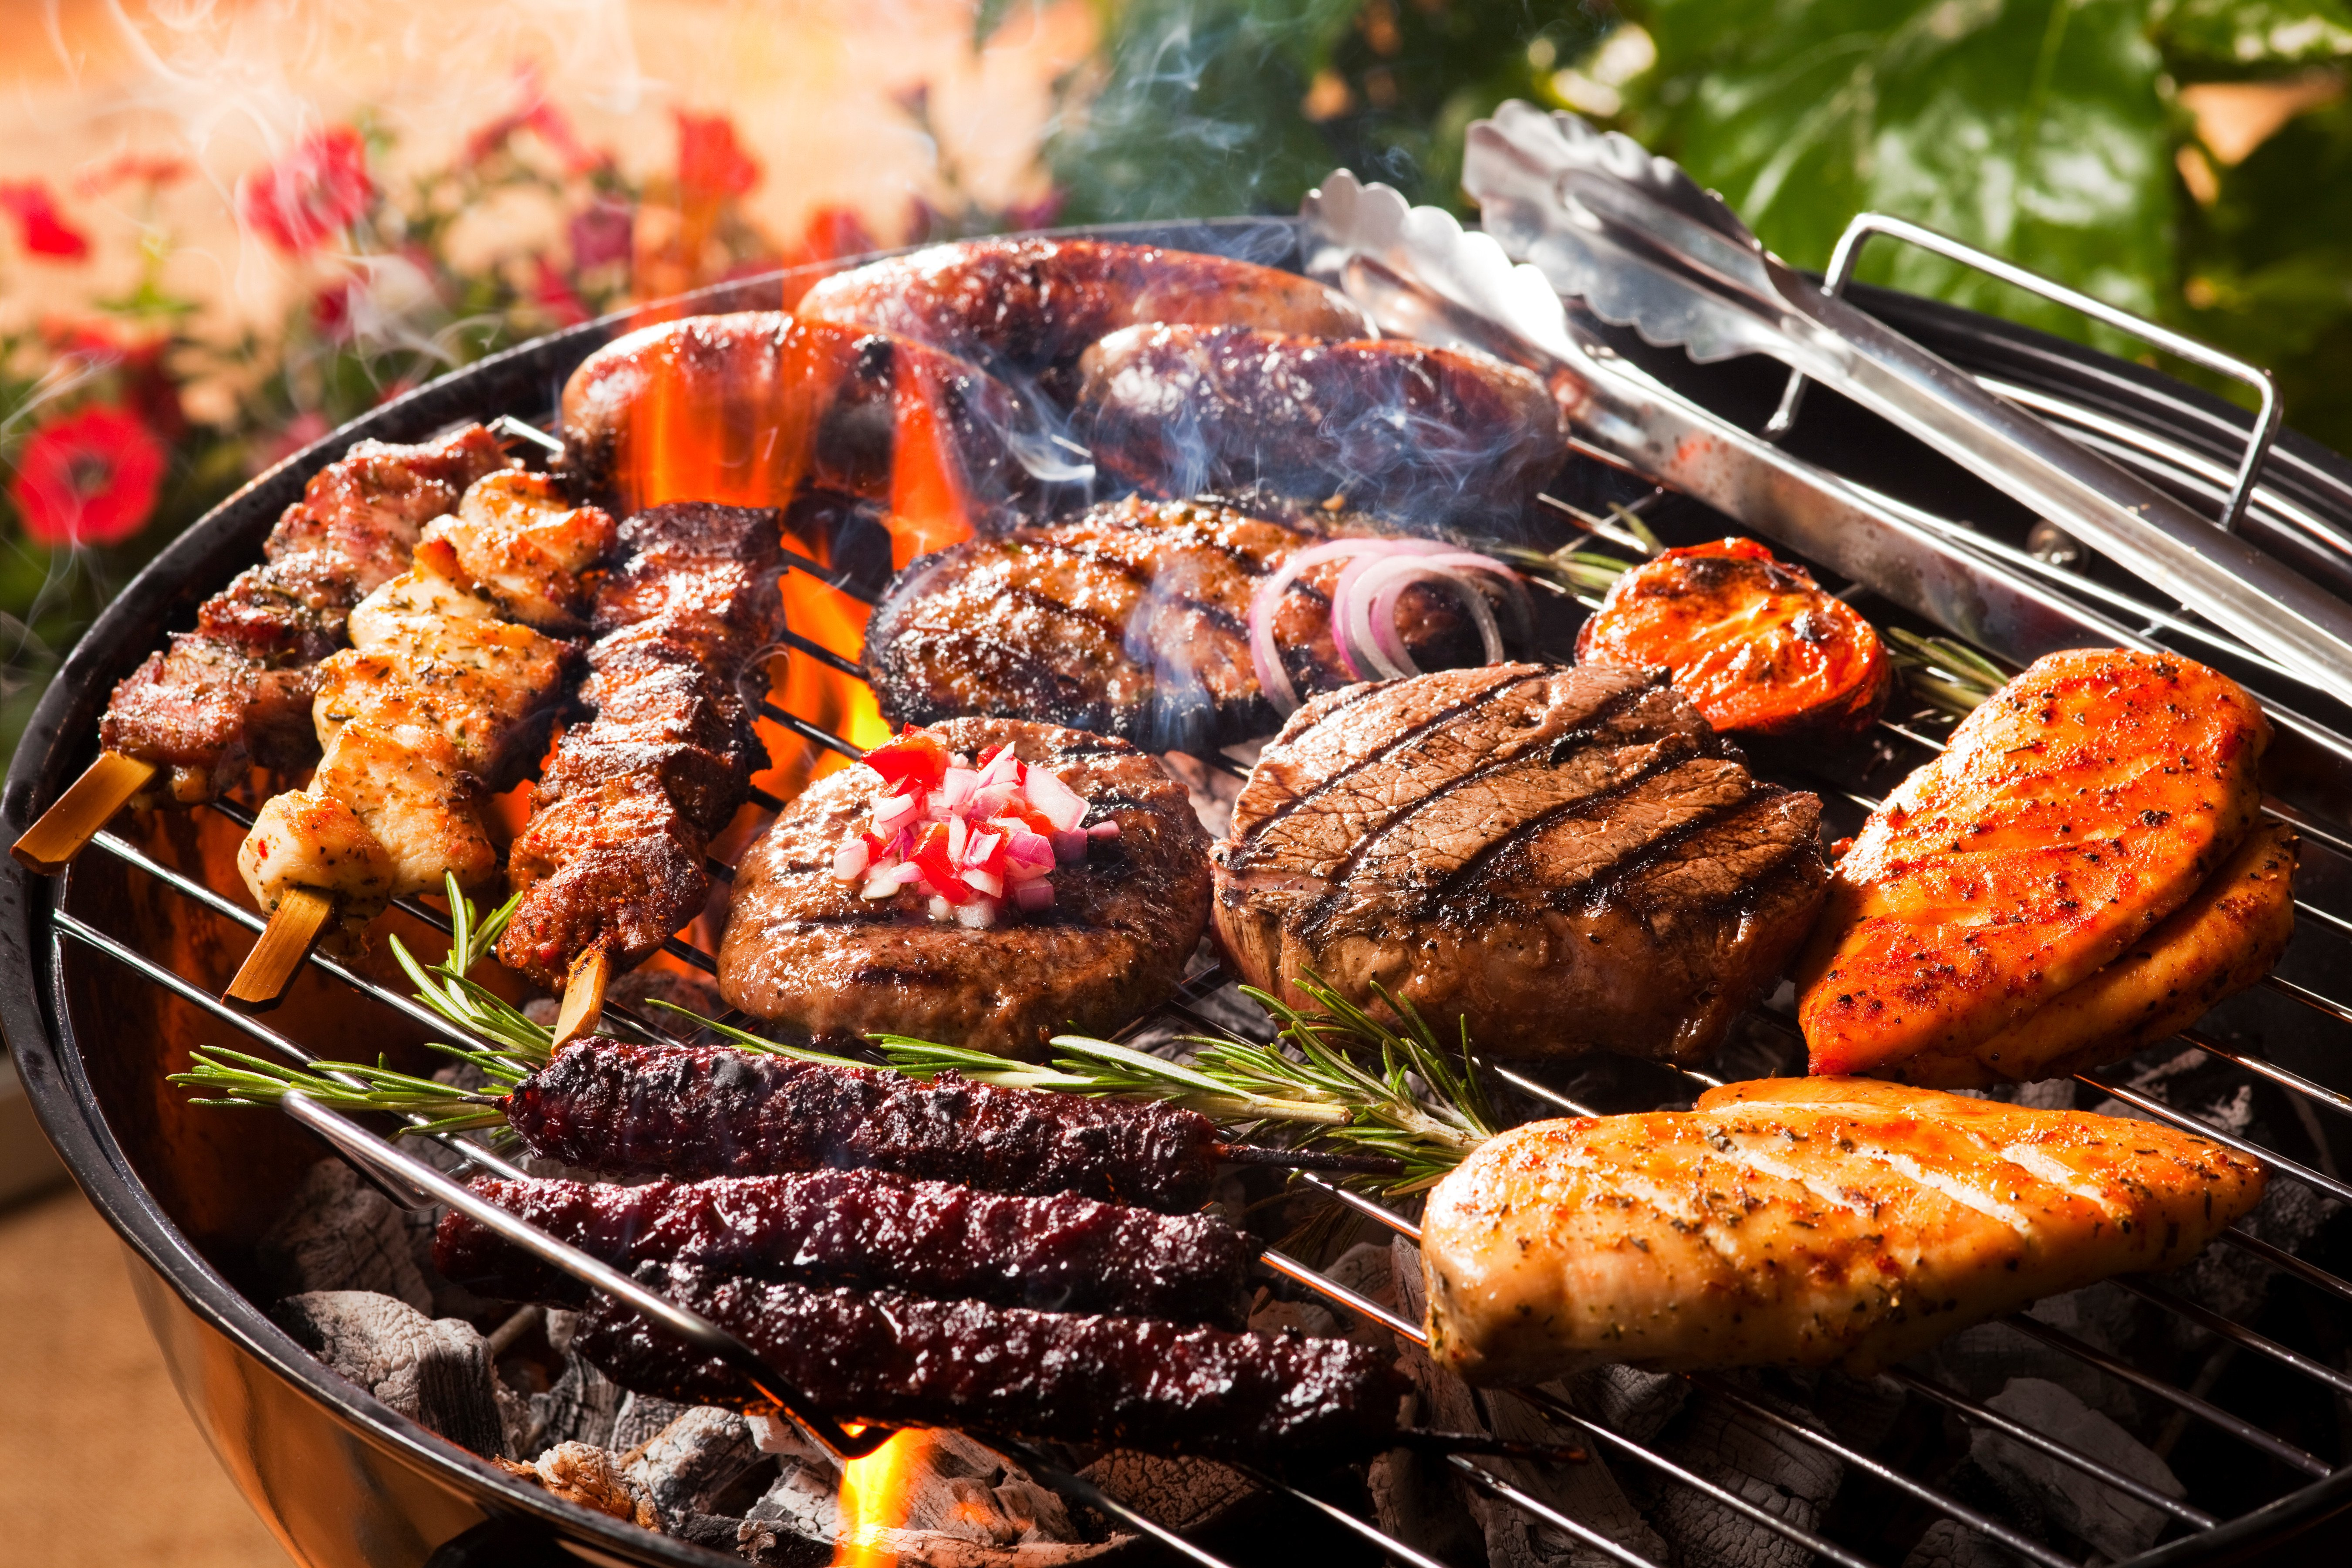 How do I clean my BBQ? Tips to get your barbecue grill sparkling in minutes